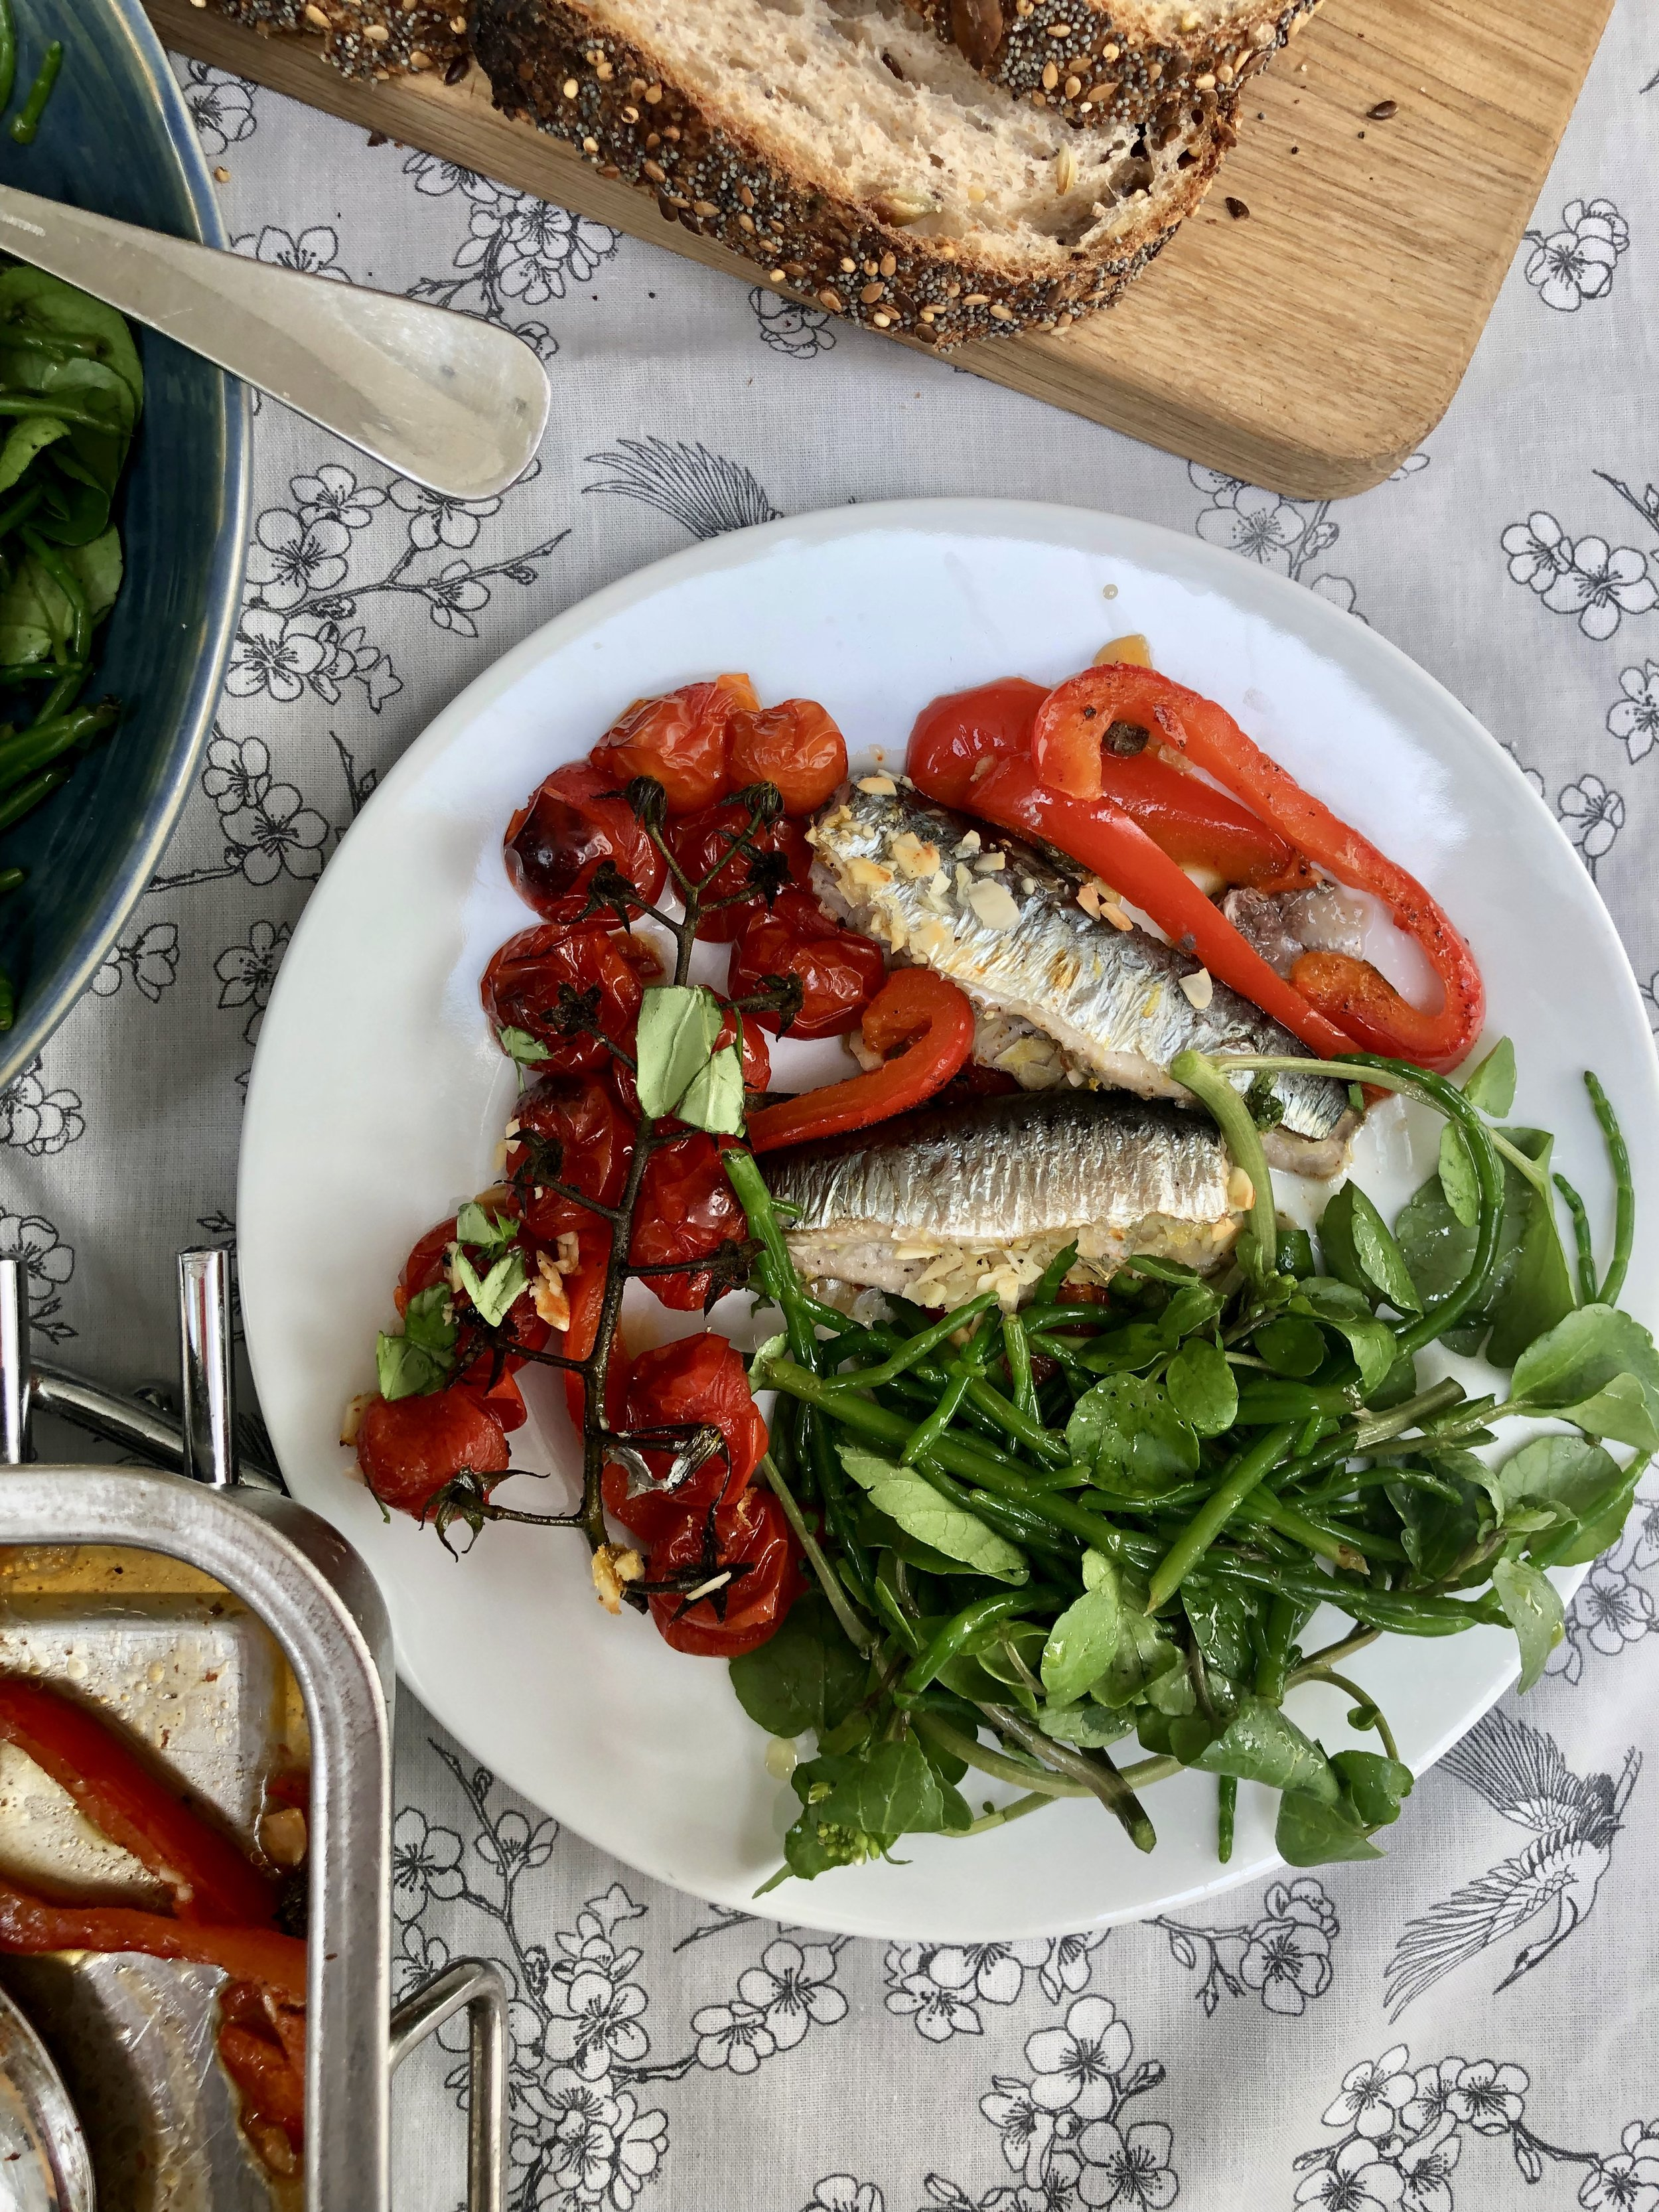 Roasted Tomatoes, Peppers and Capers with Stuffed Sardines, served with Watercress and Samphire Salad and Sourdough